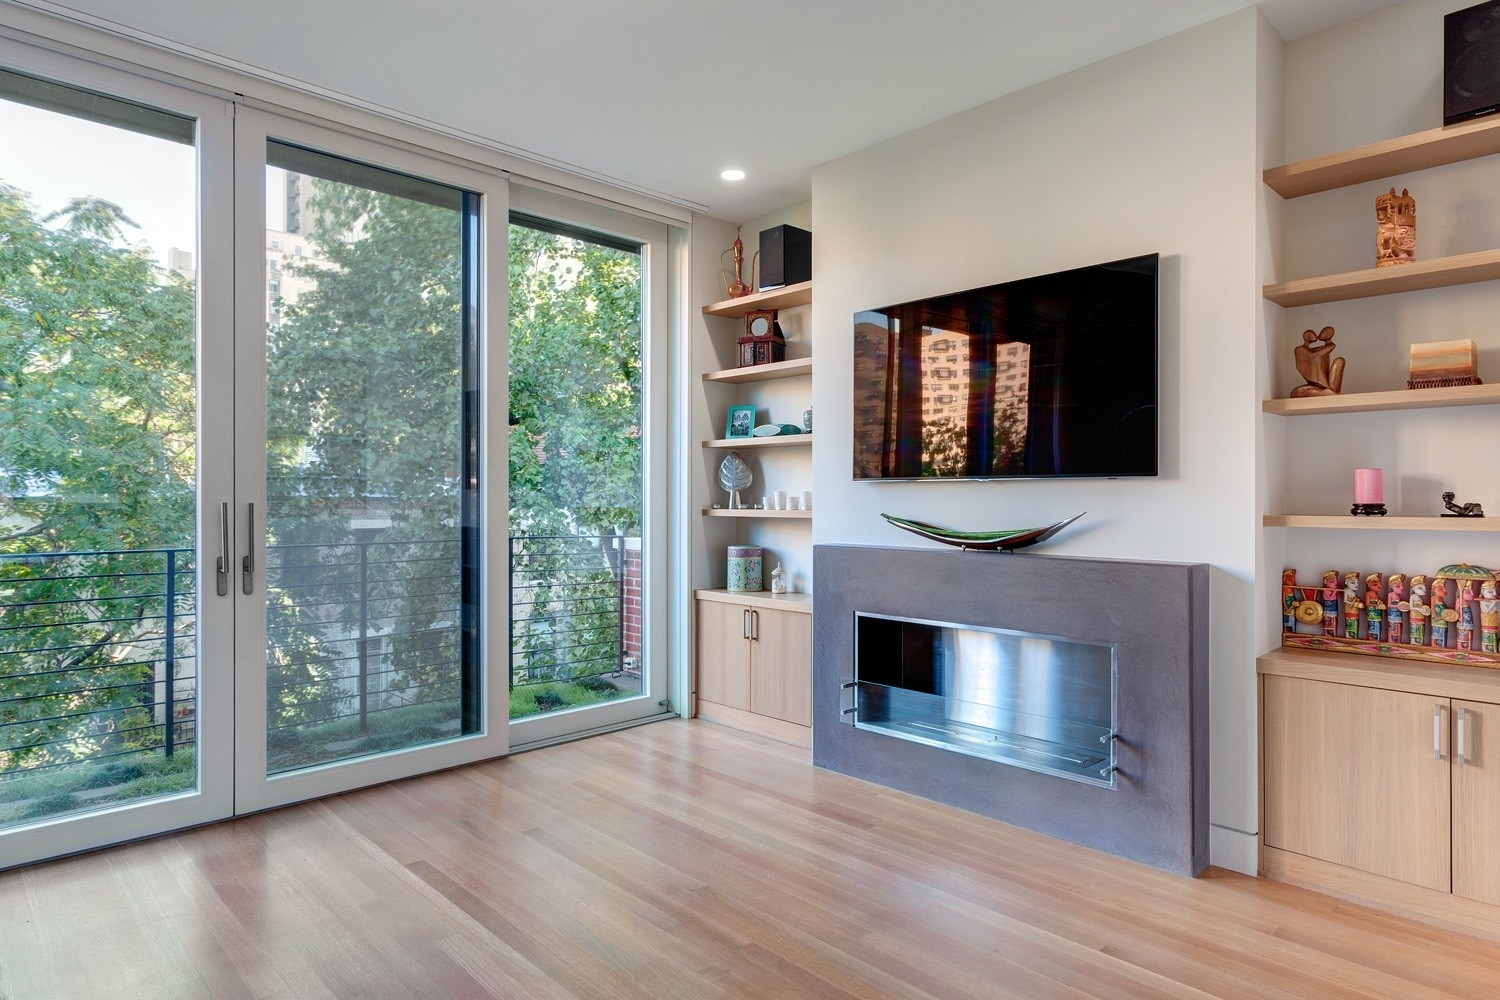 20. Single Family Townhouse for Sale at Upper West Side, New York, NY 10024